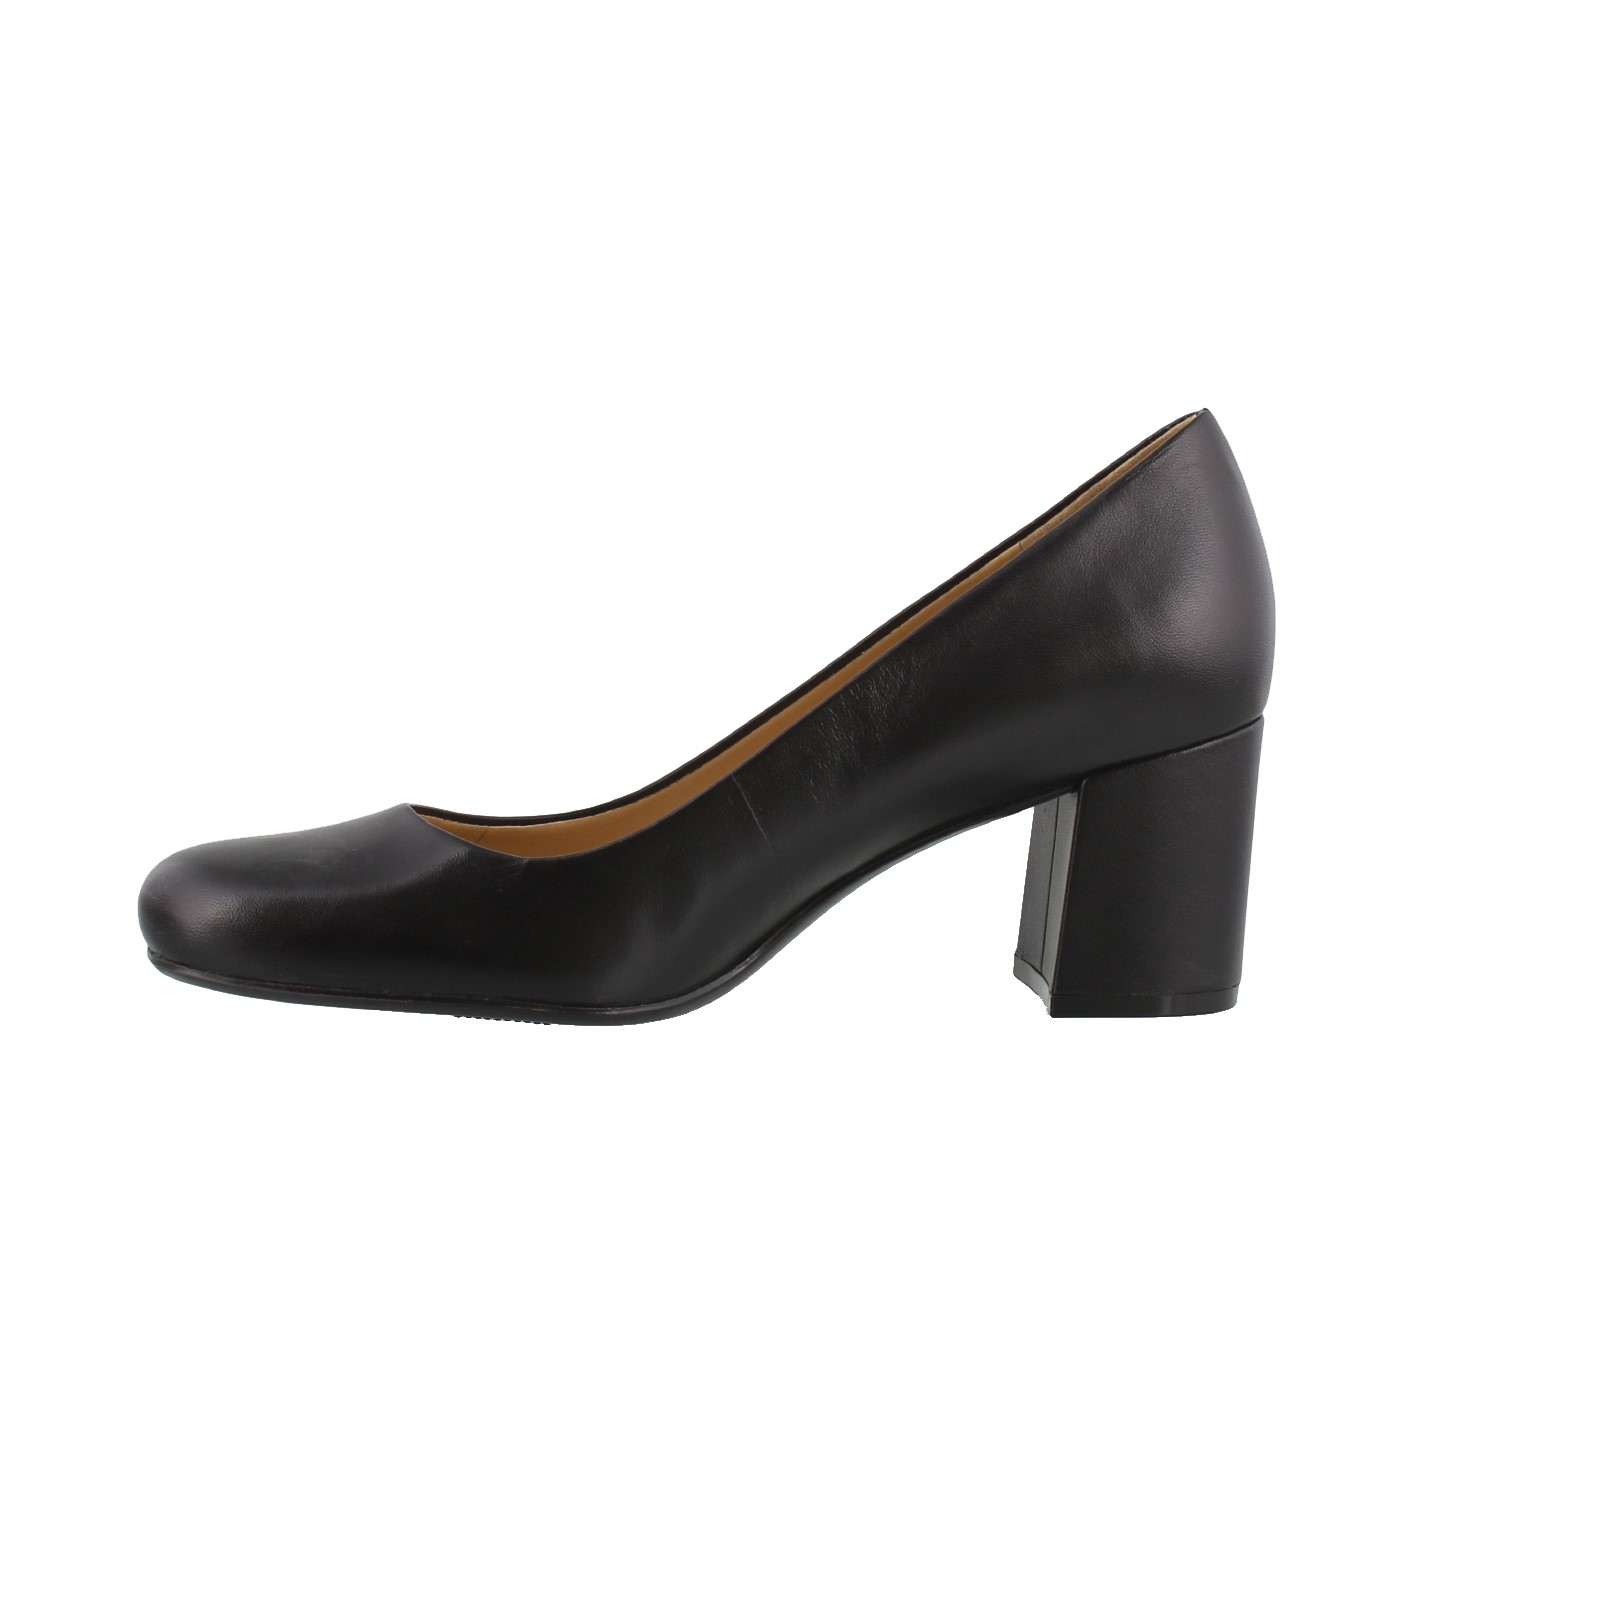 2f164a1718 Next. add to favorites. Women's Naturalizer, Whitney Mid Heel Pumps